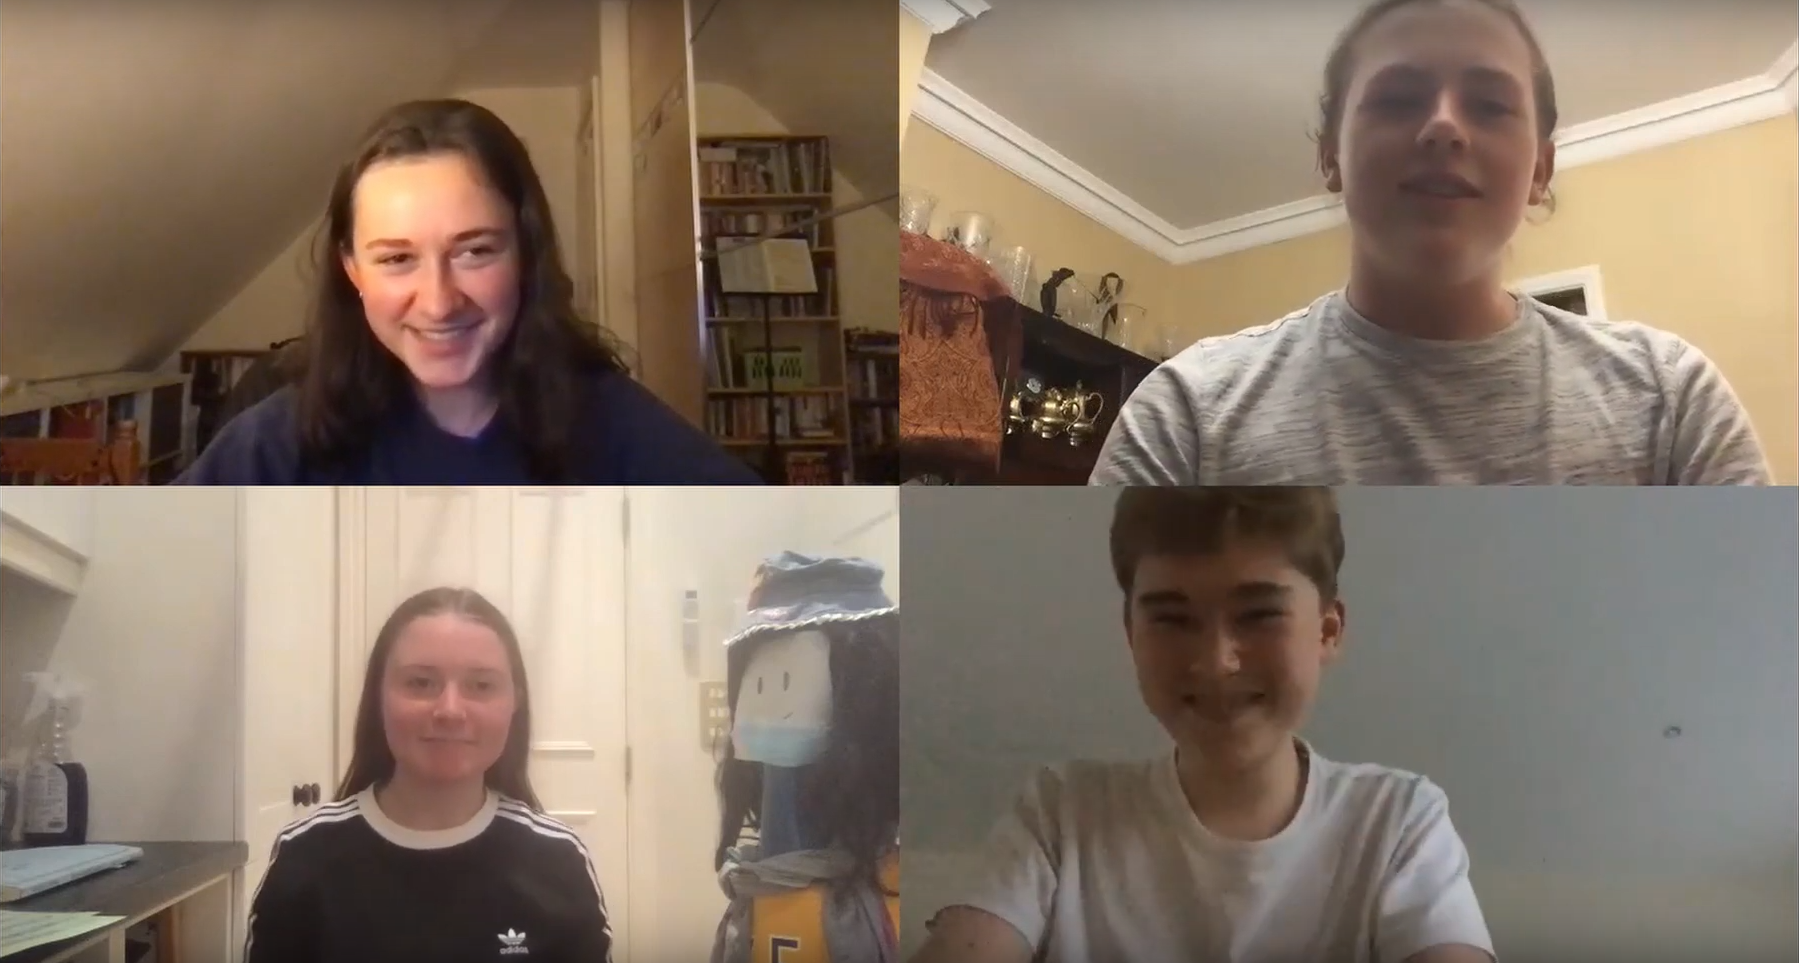 Zoom call with four young people